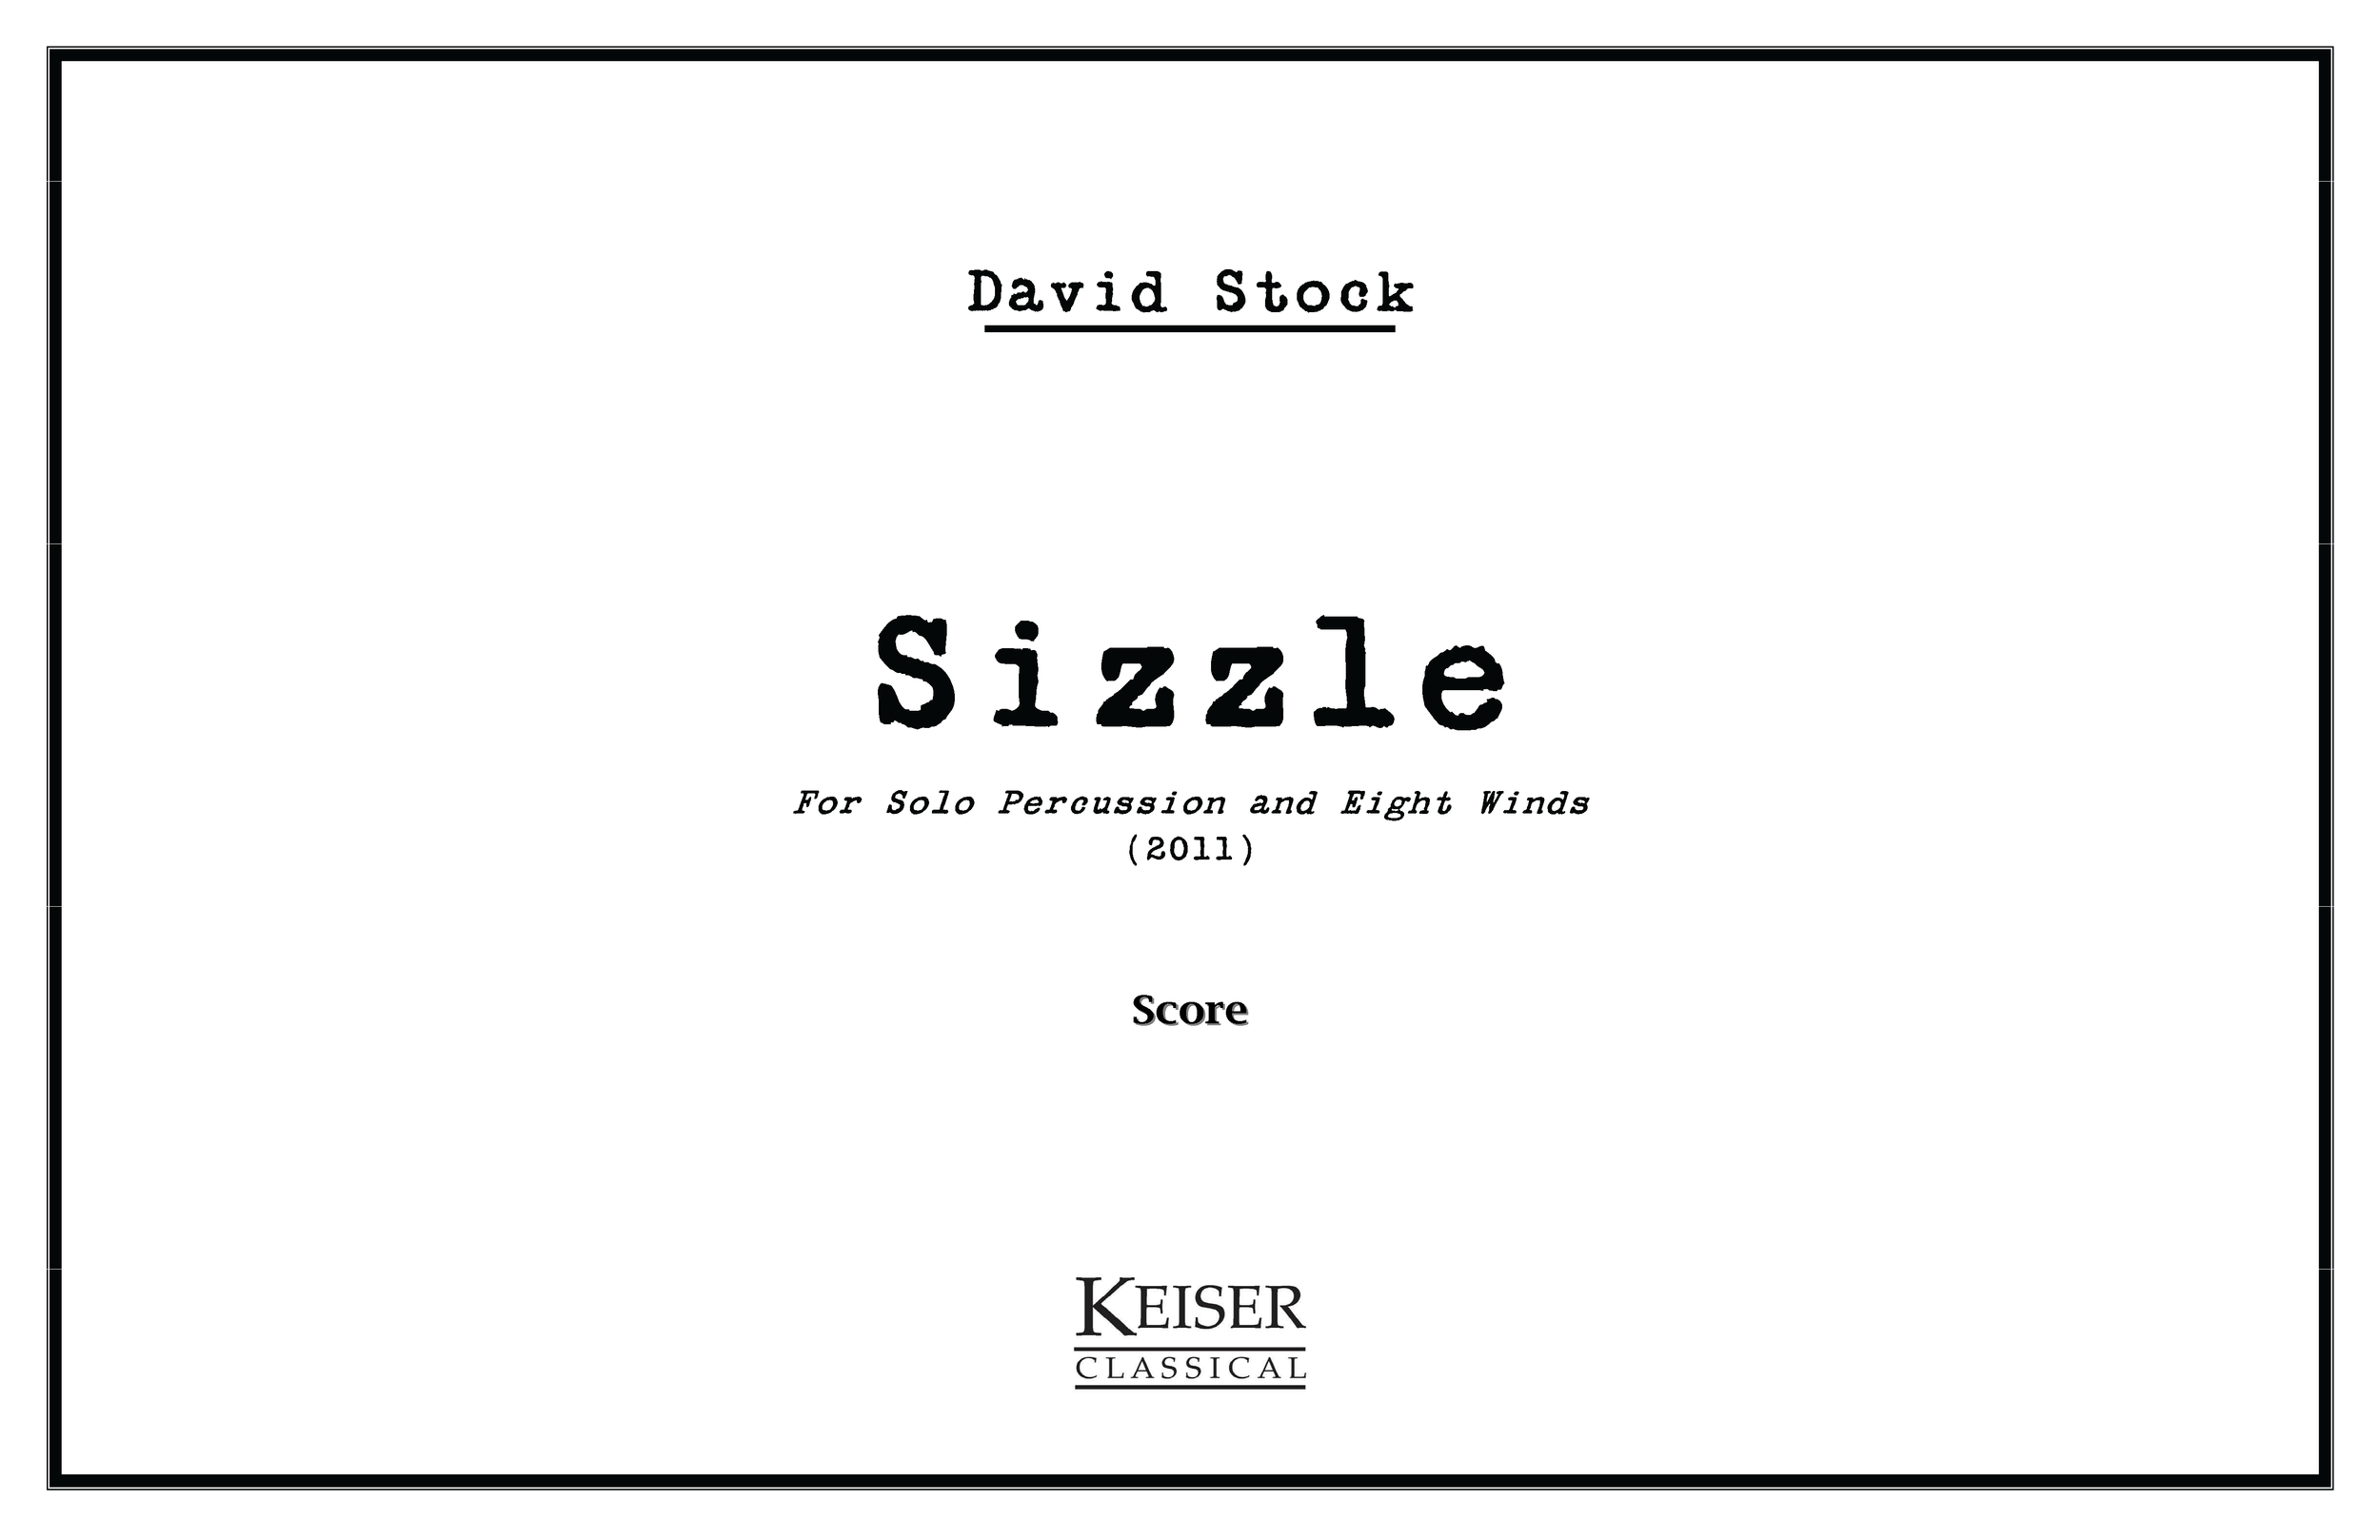 Sizzle for Solo Percussion and 8 Winds (2011) - Perc Solo: Flute(dPicc), Oboe, Clarinet(dEbCl), Soprano Sax(dAsax), Horn, C Trumpet, Trombone, TubaRent/Buy: Keiser Music